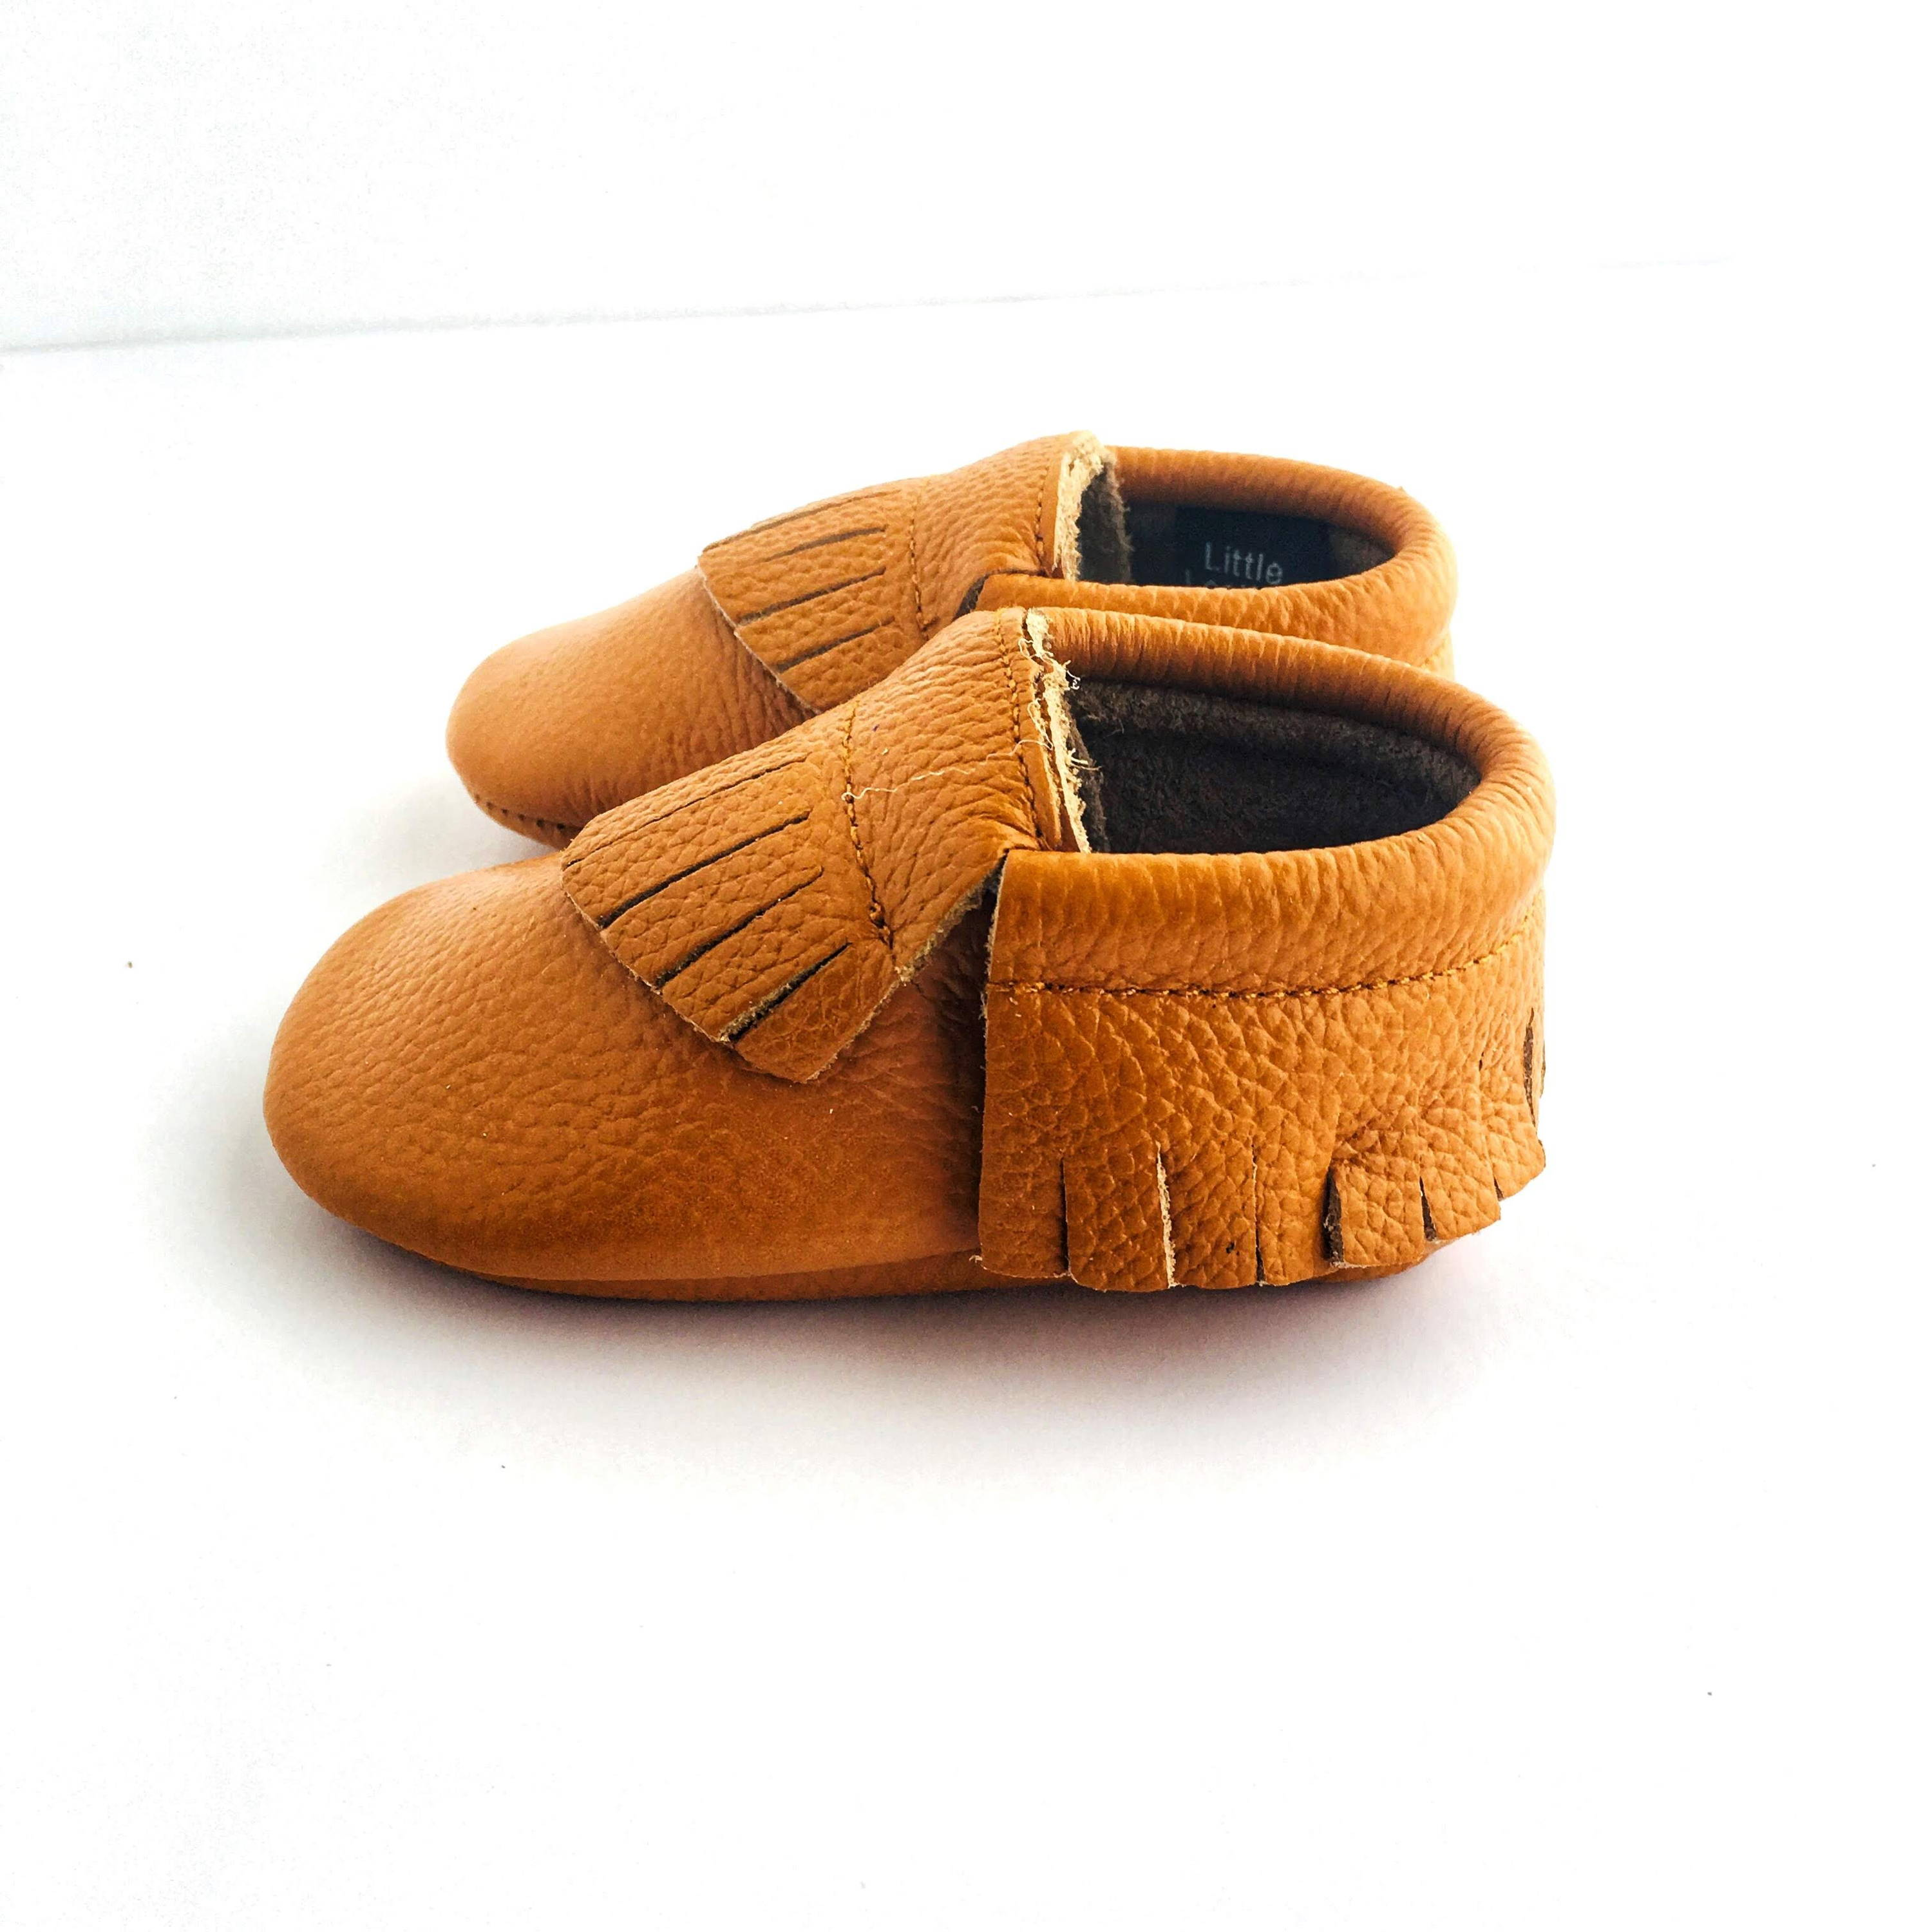 Caramel colour soft sole shoes with fringe sole view